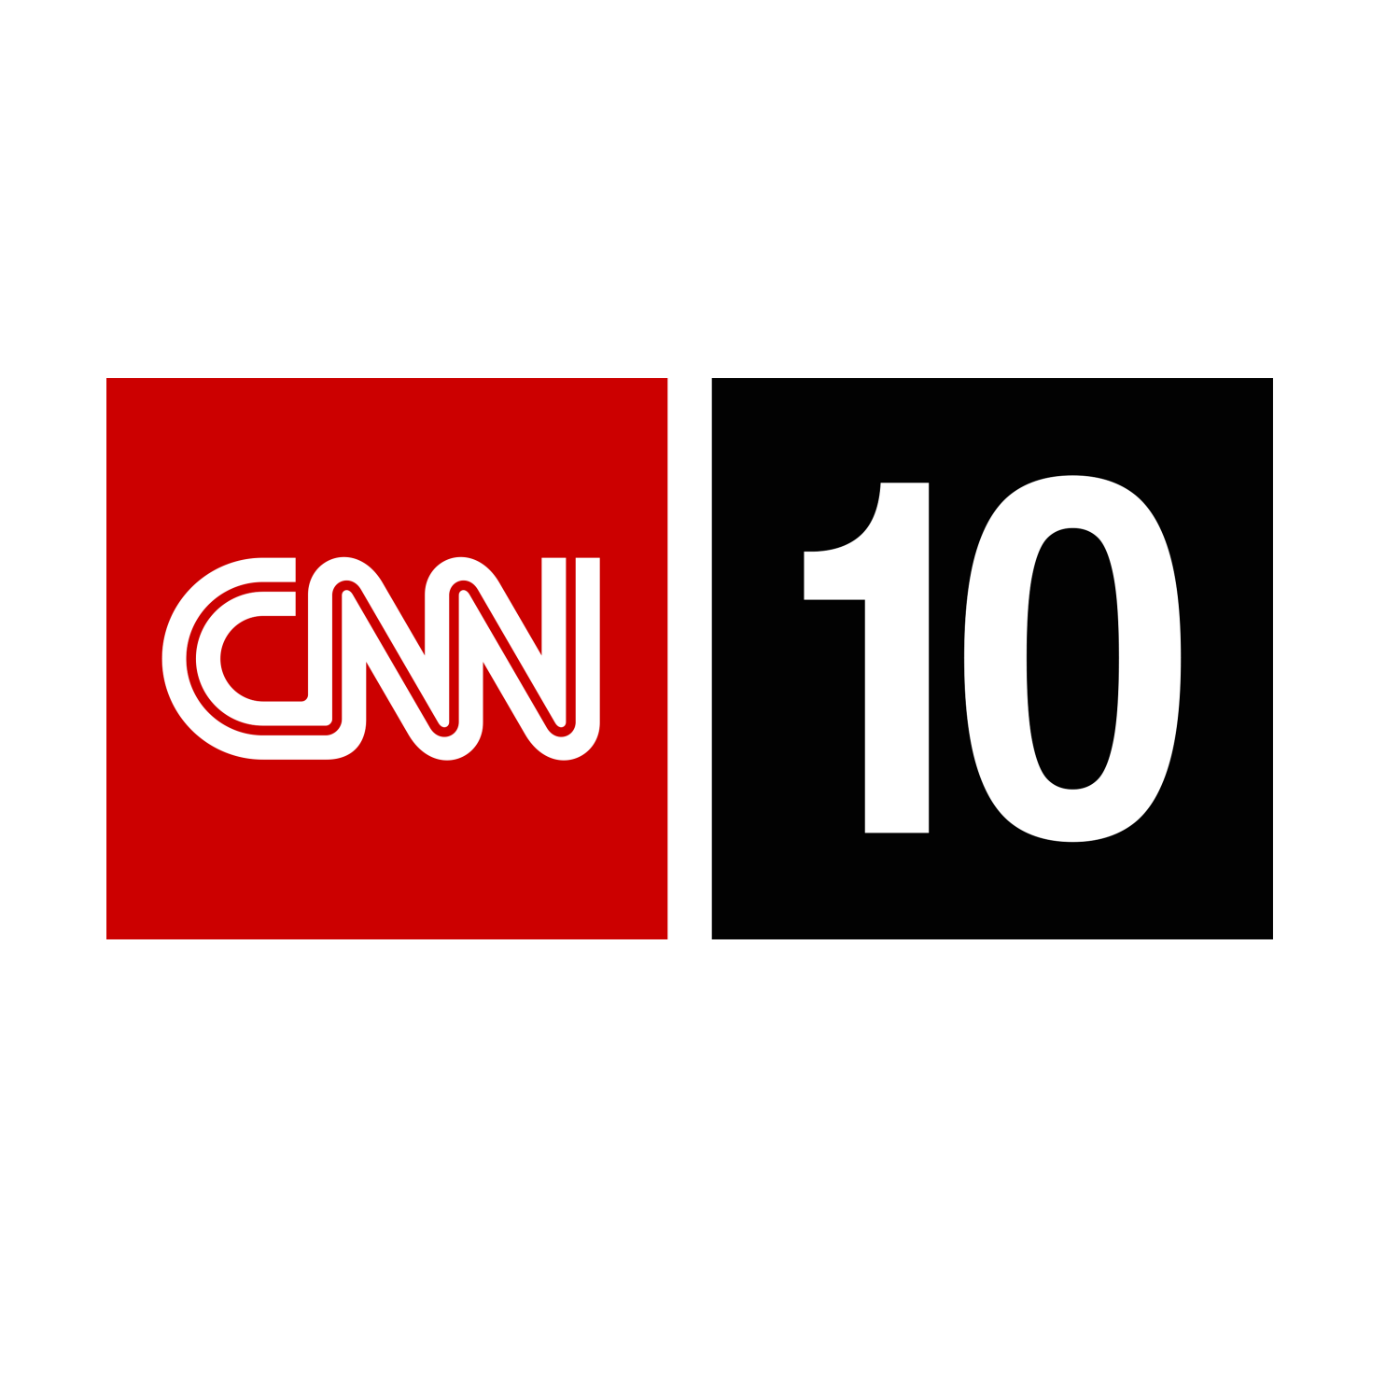 CNN Student News - May 3, 2013